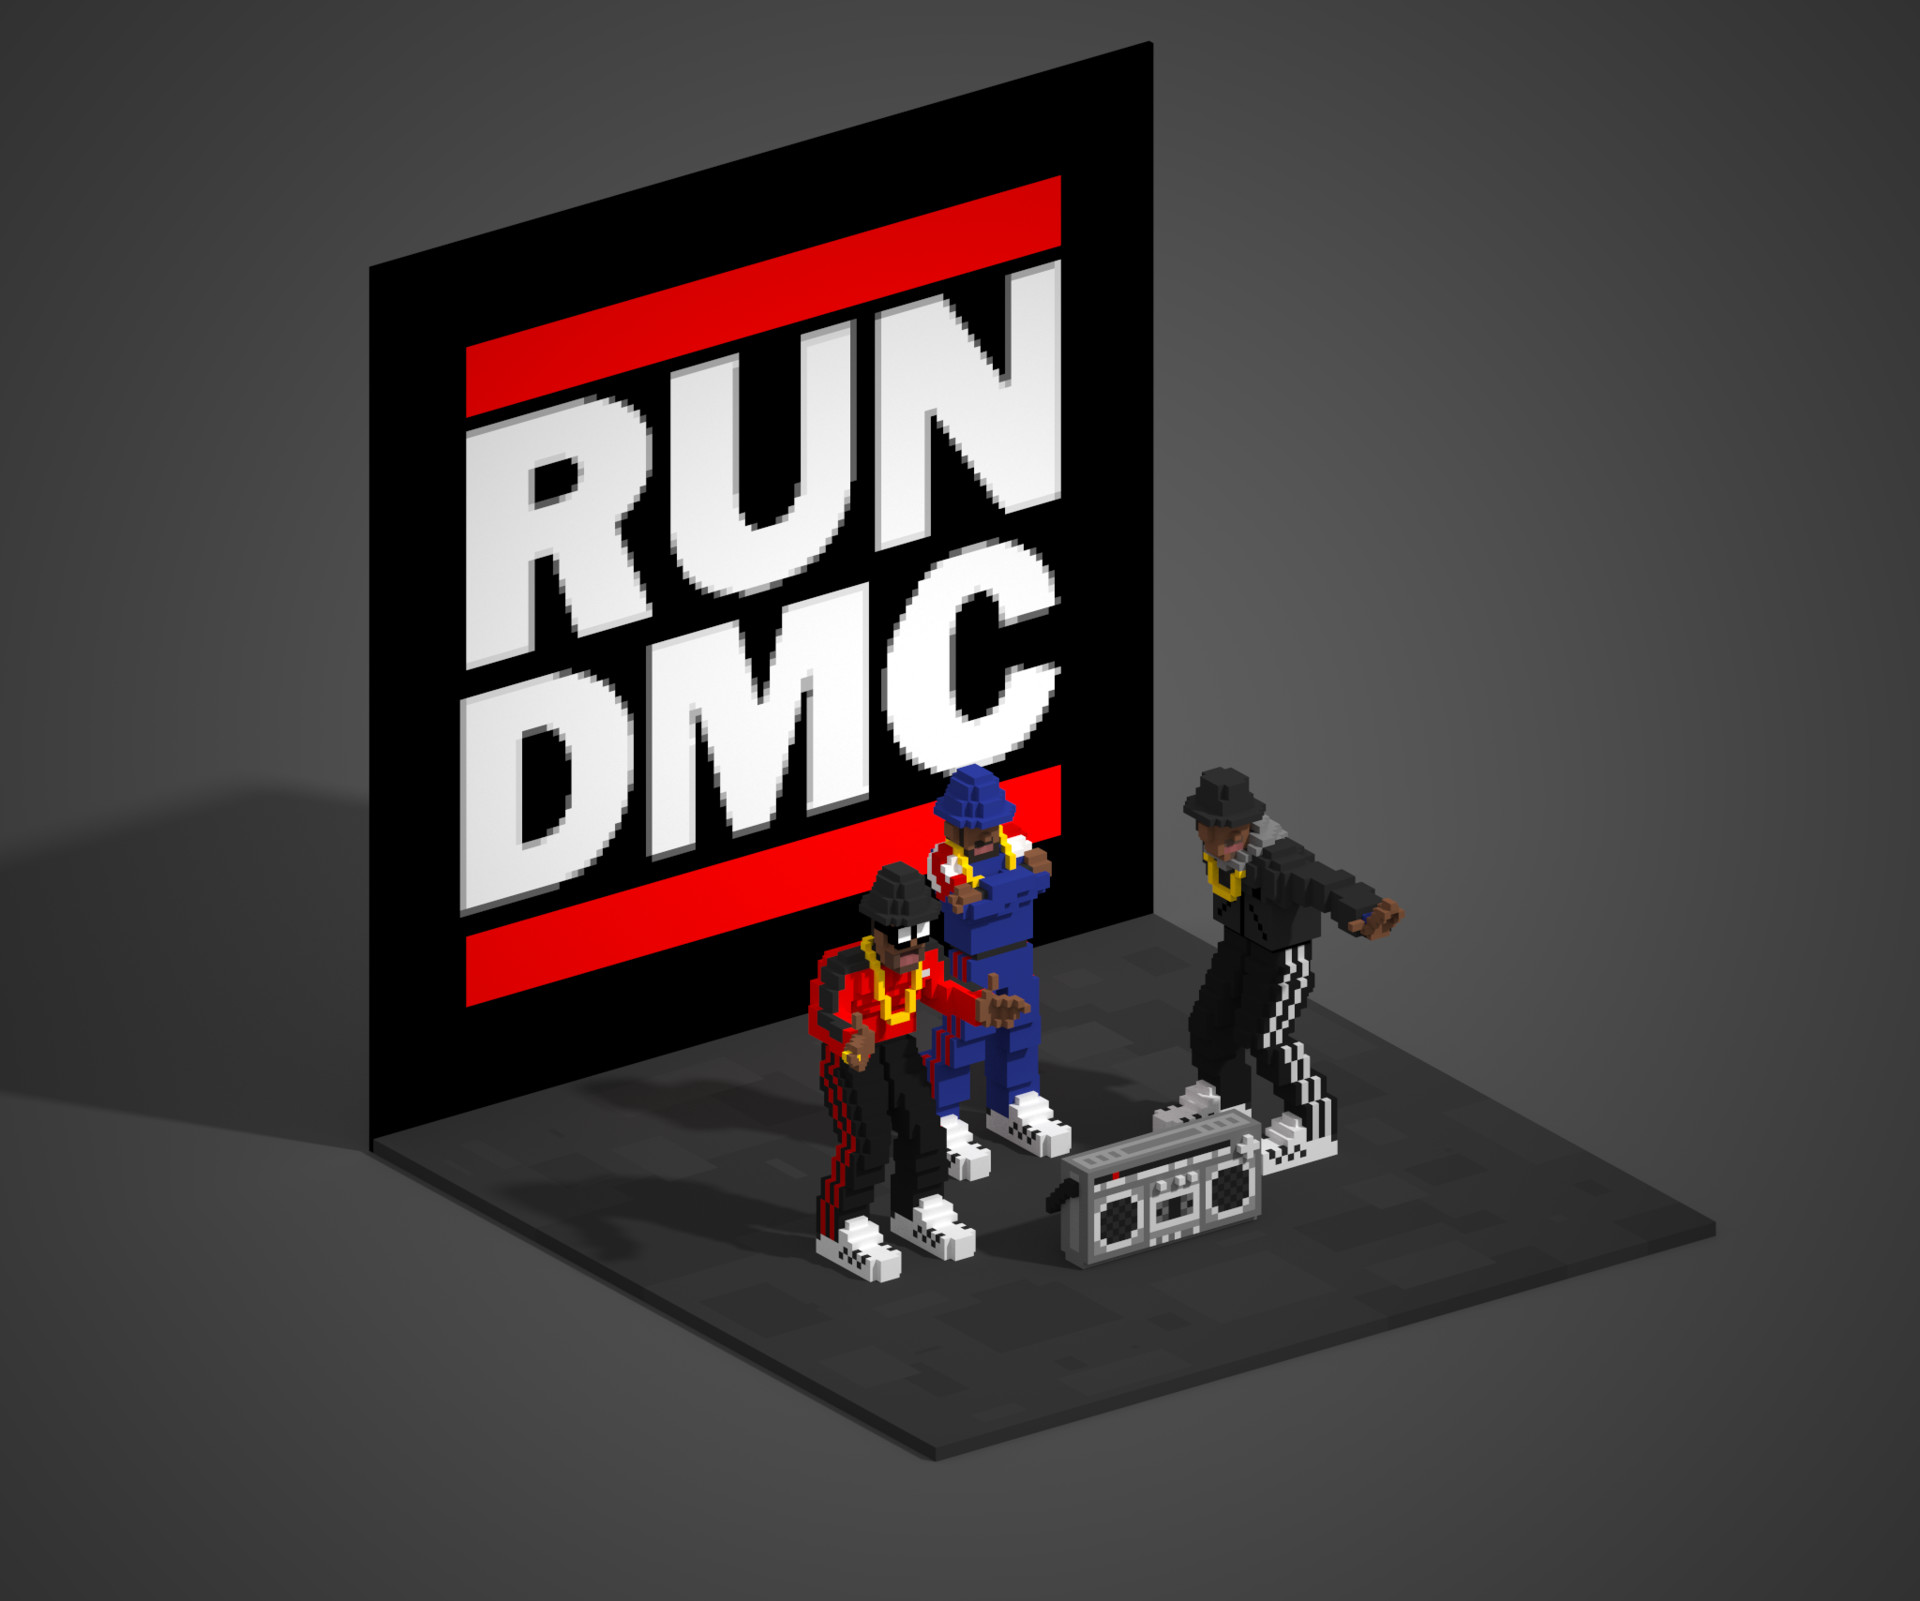 ArtStation - RUN DMC, Mike Nicholson